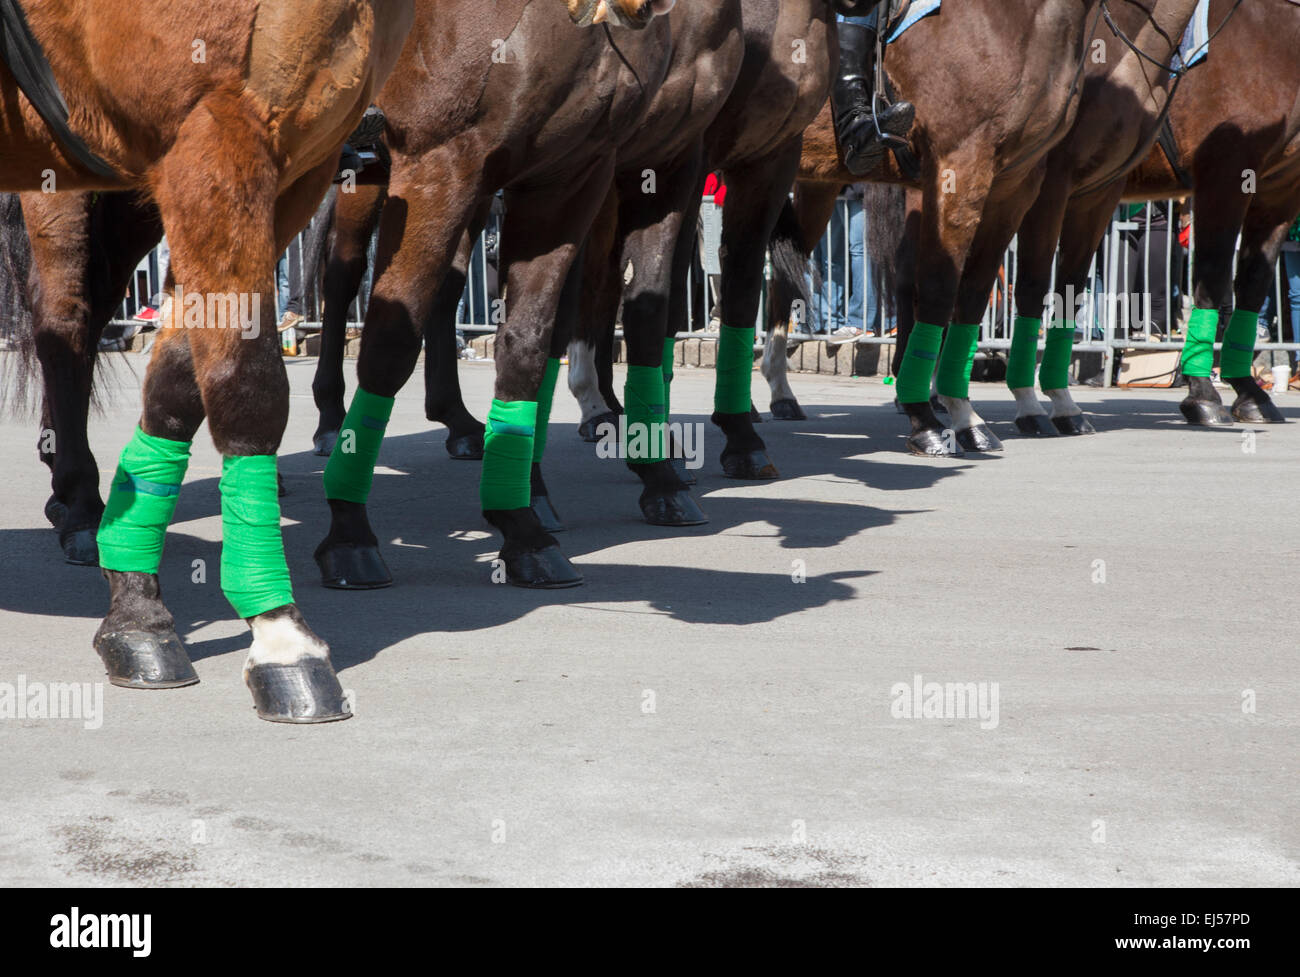 Police horses with green leggings, St. Patrick's Day Parade, 2014, South Boston, Massachusetts, USA - Stock Image